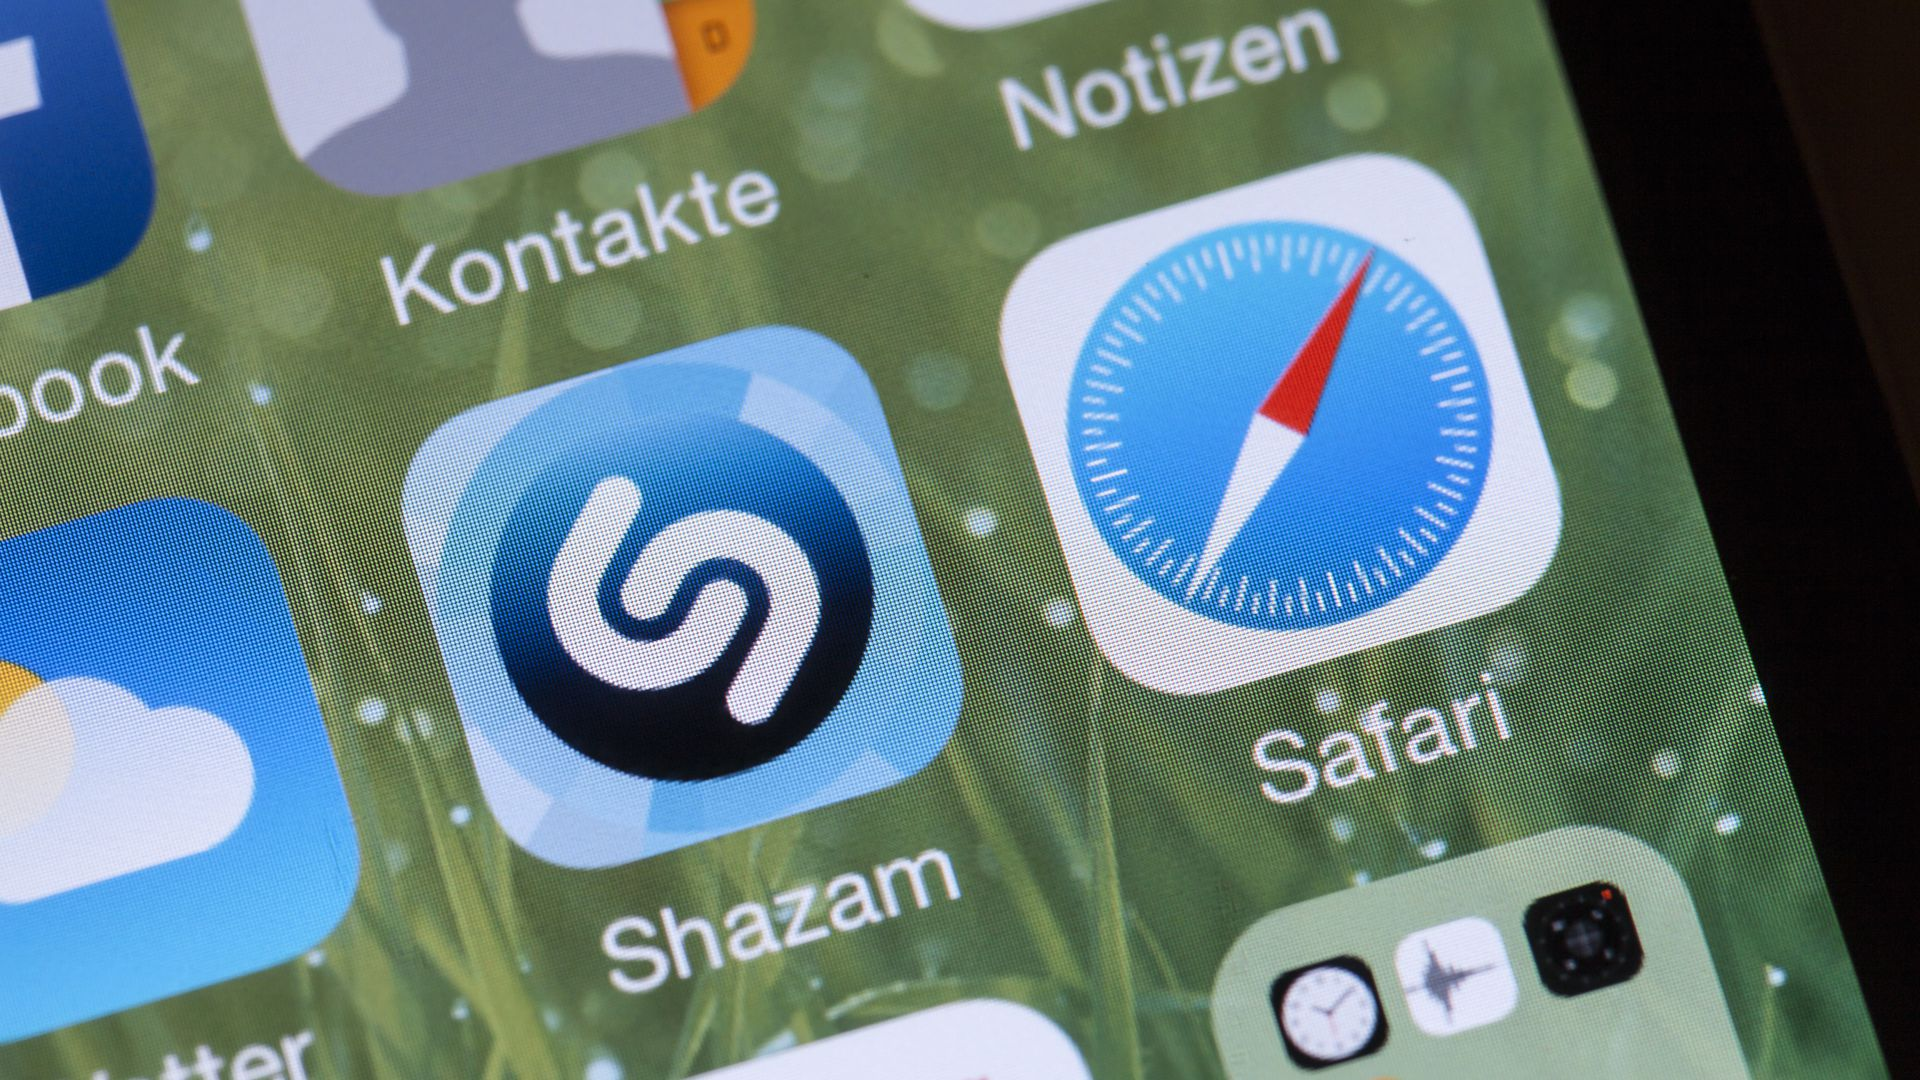 Shazam app on a German iPhone